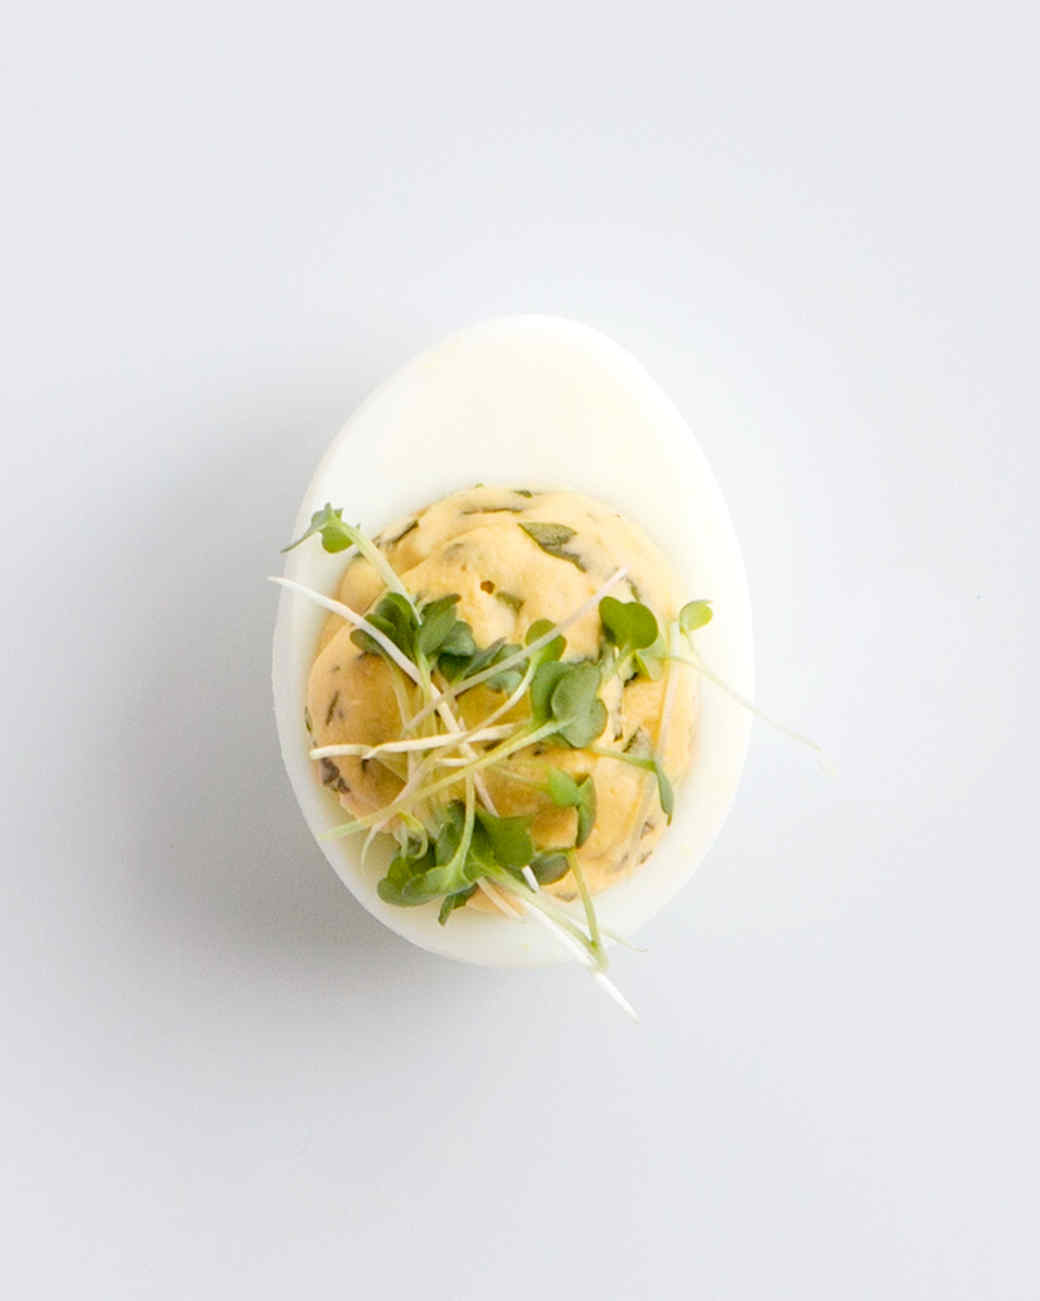 watercress-deviled-eggs-1116-d111028.jpg